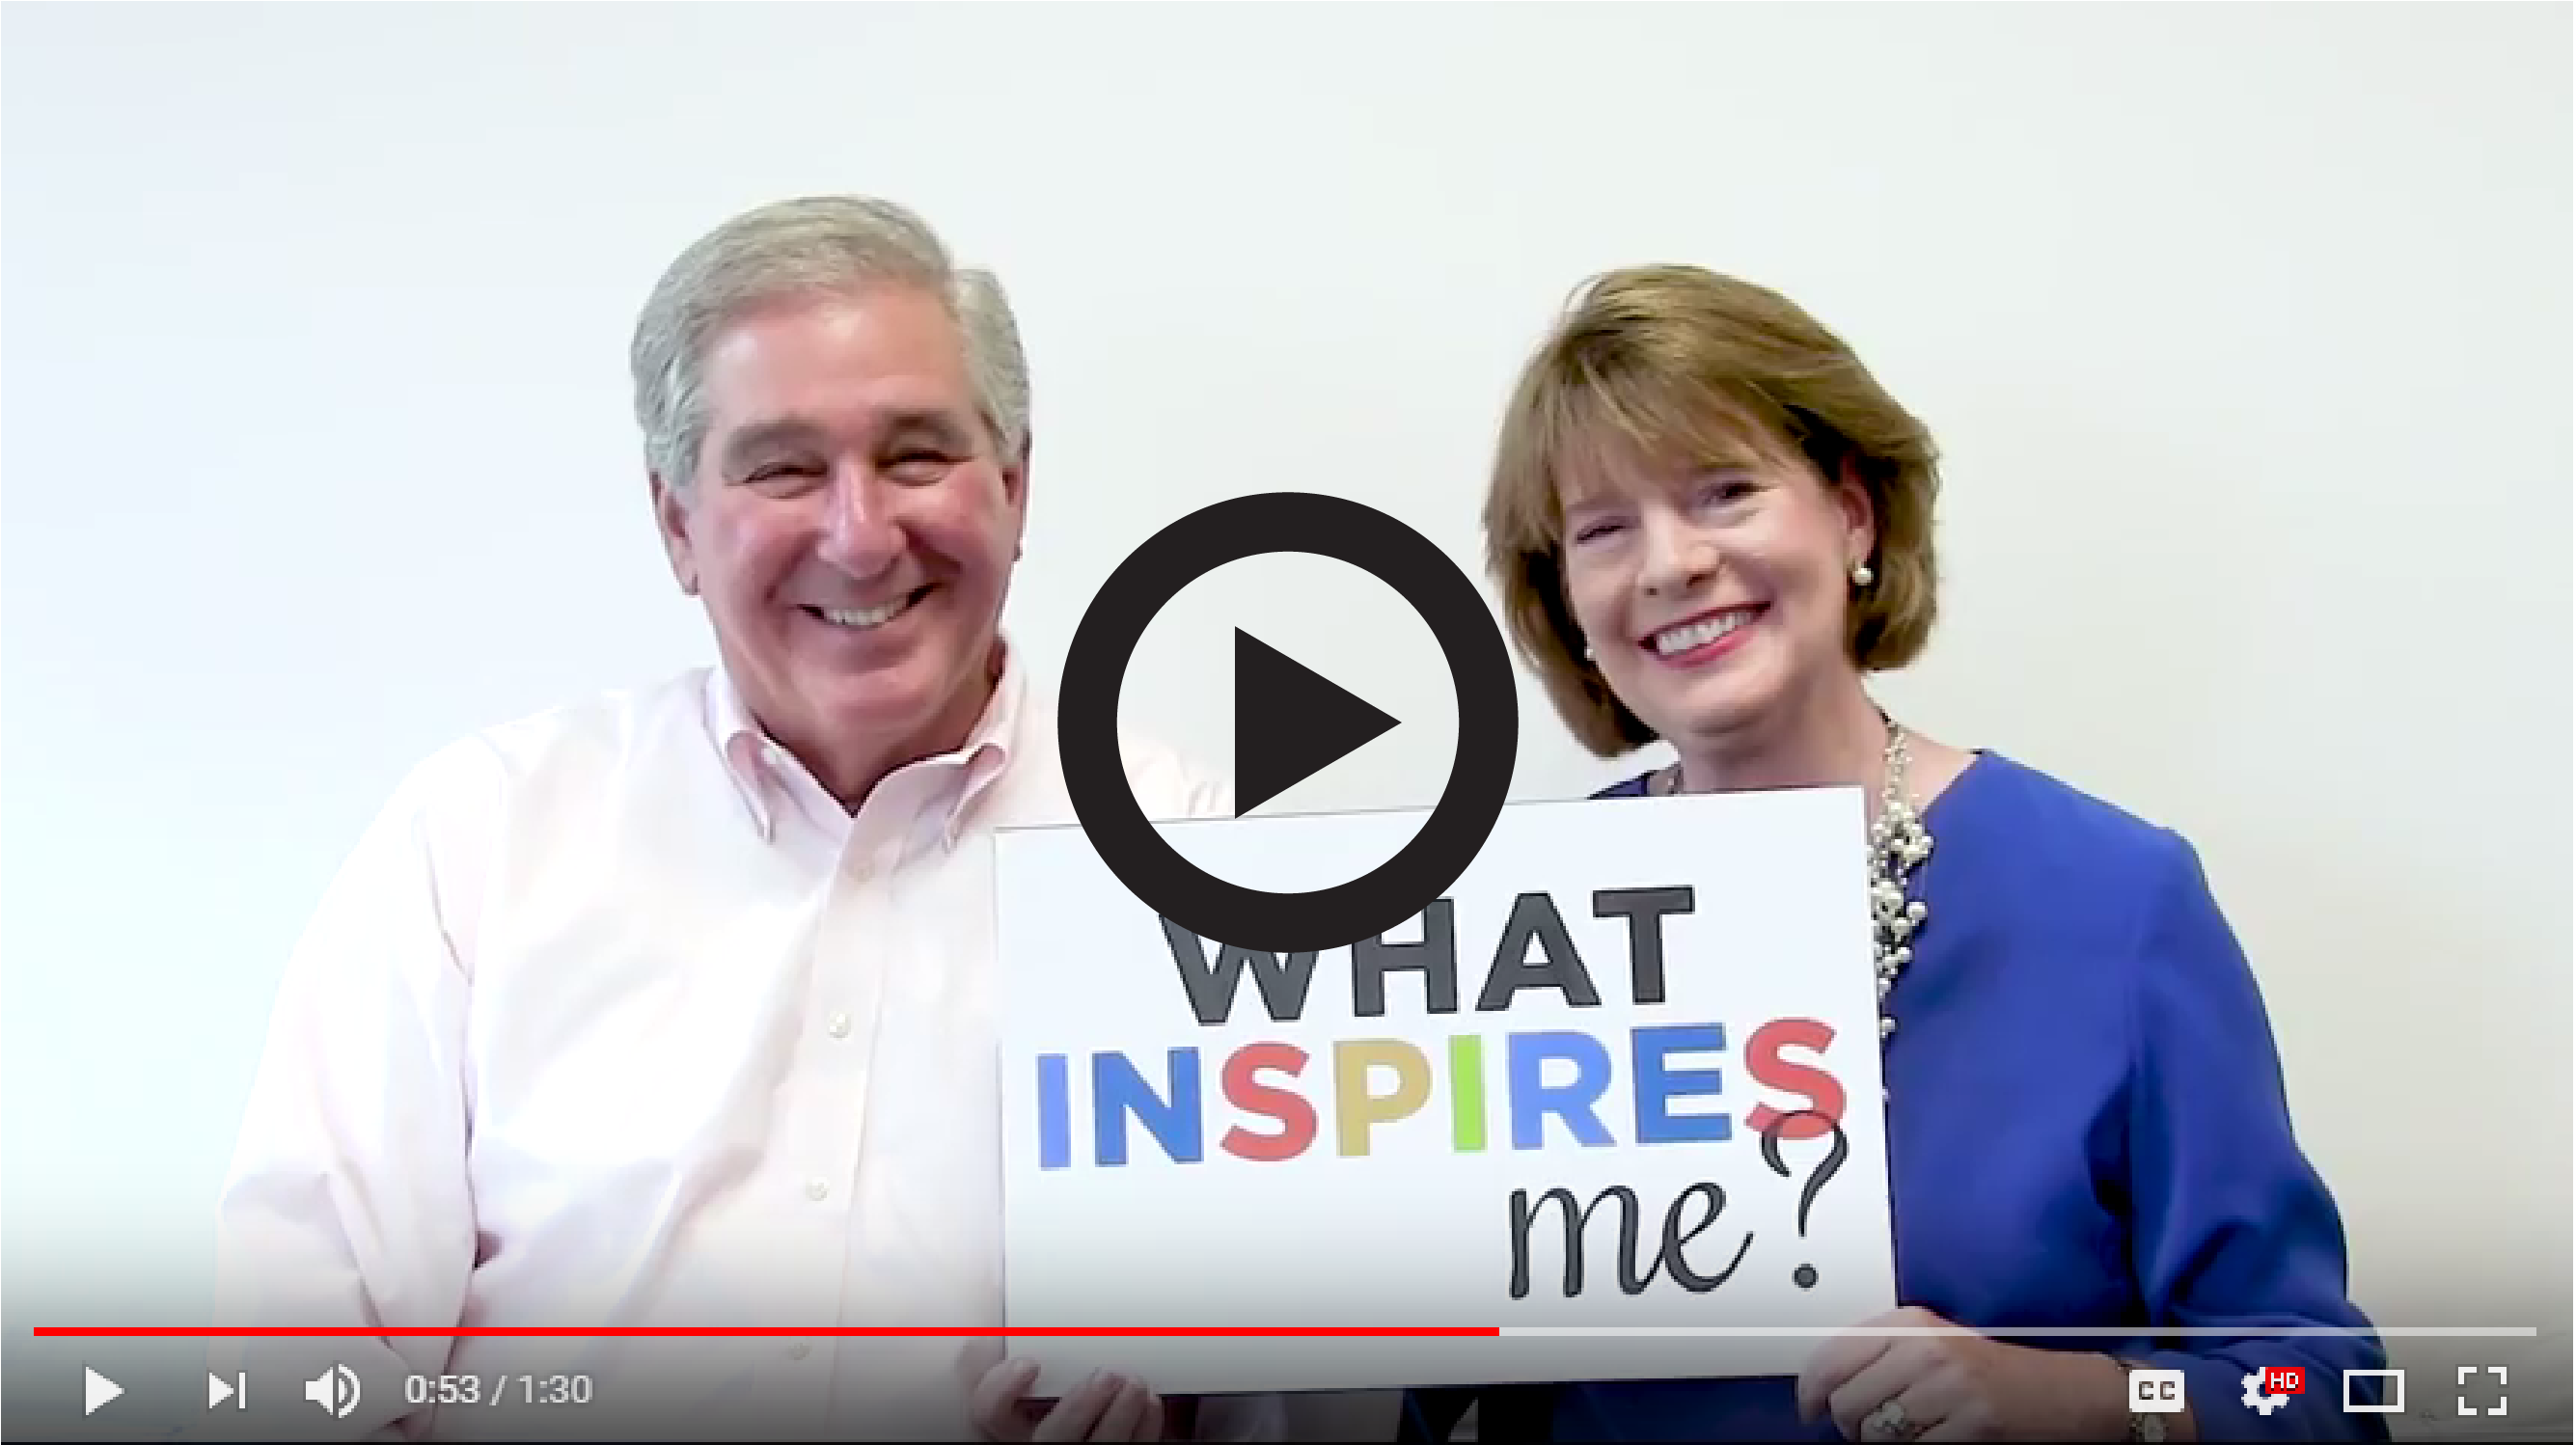 Learn what Inspires Our Campaign Co-Chairs